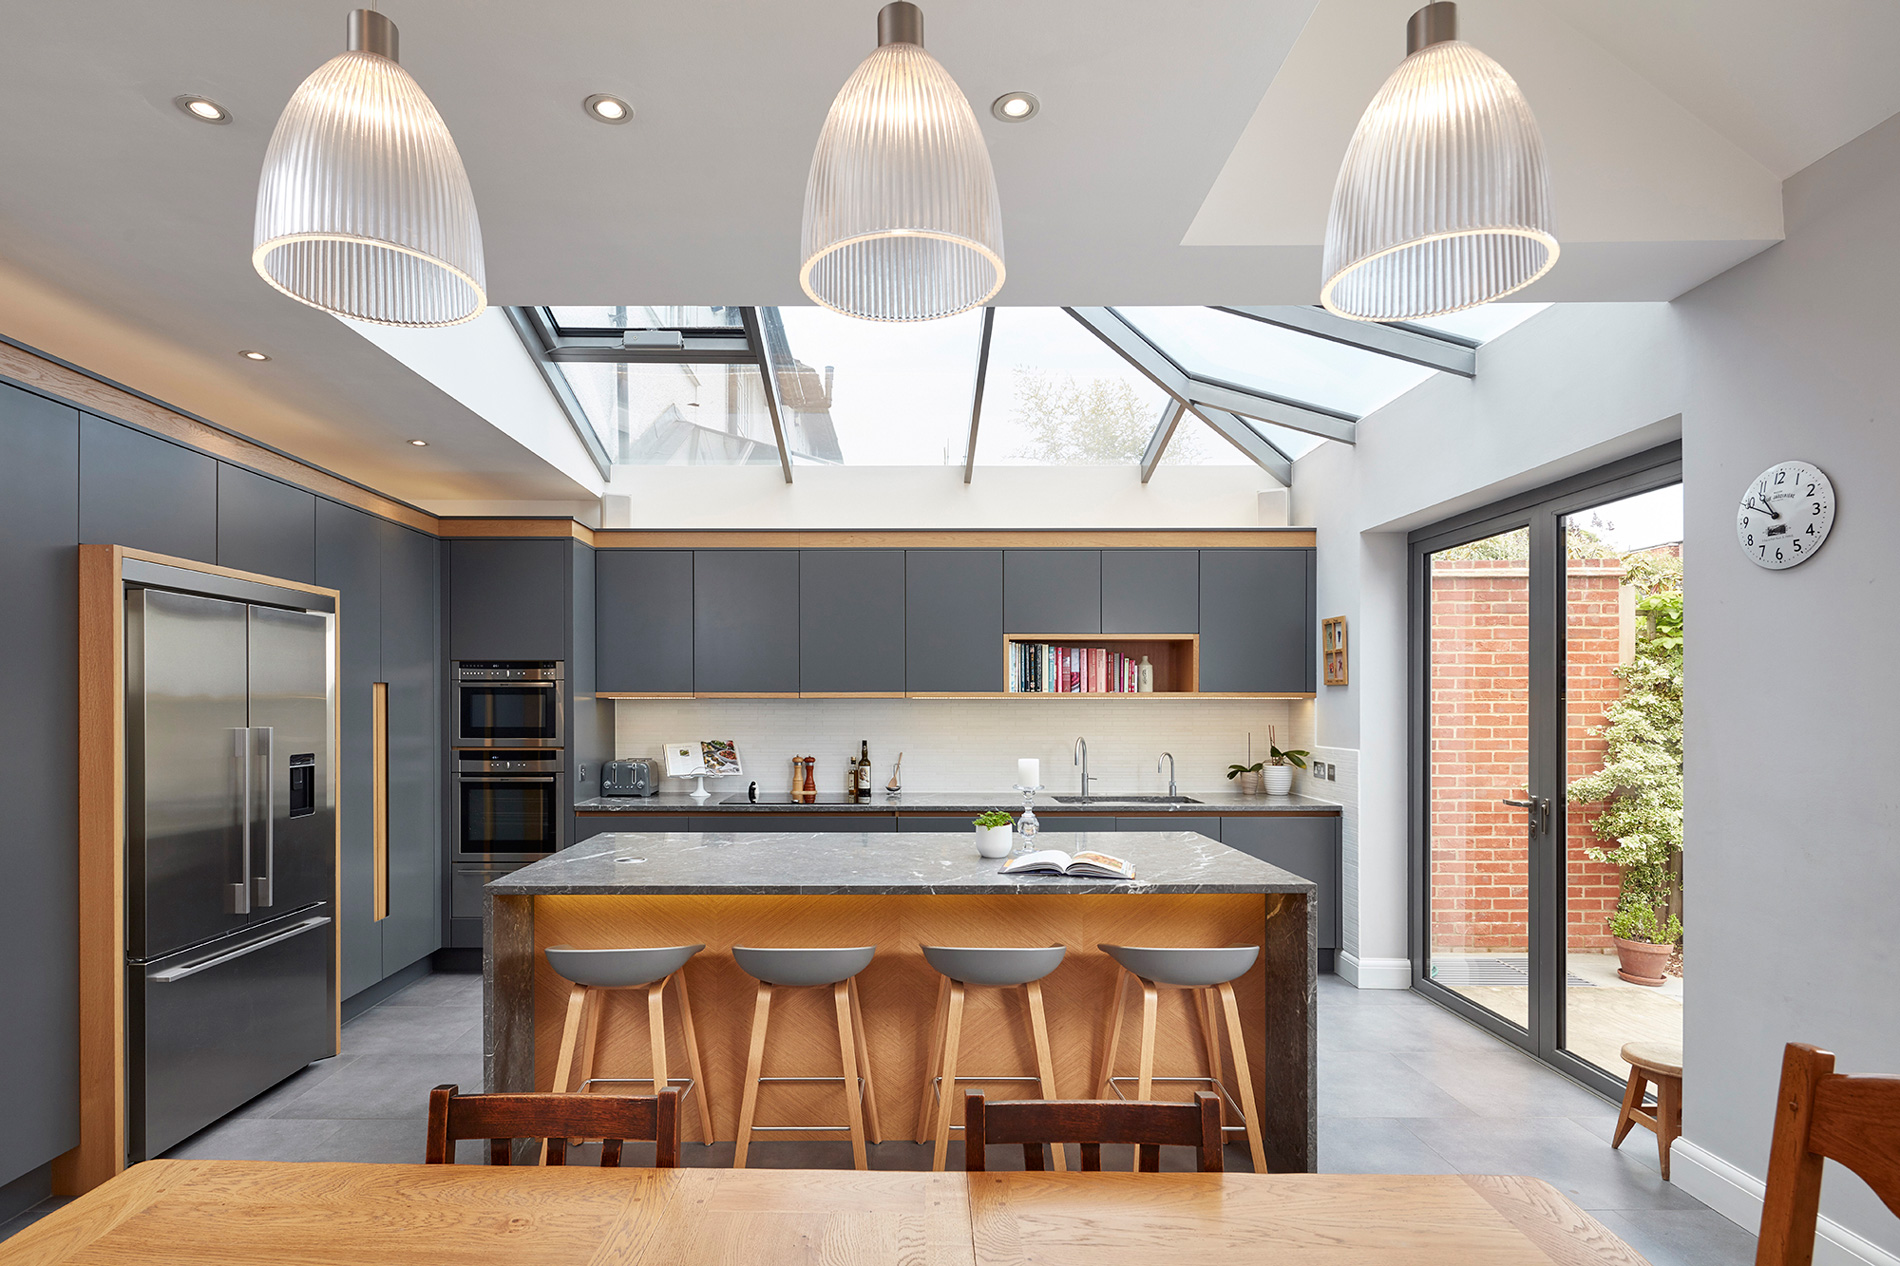 Bespoke Modern Kitchen Design in London